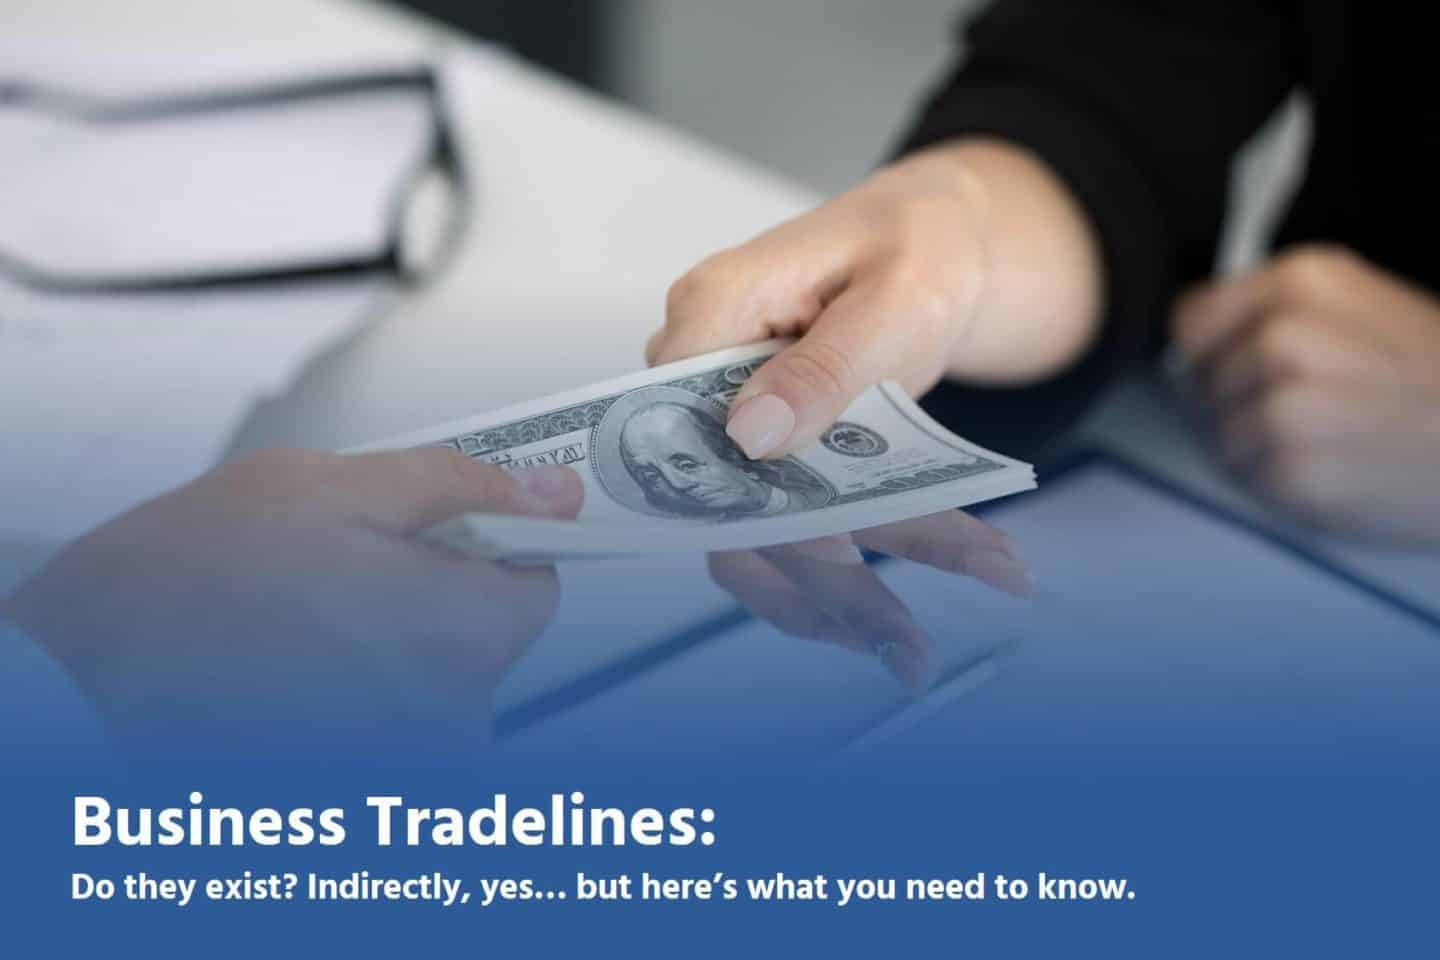 business tradelines